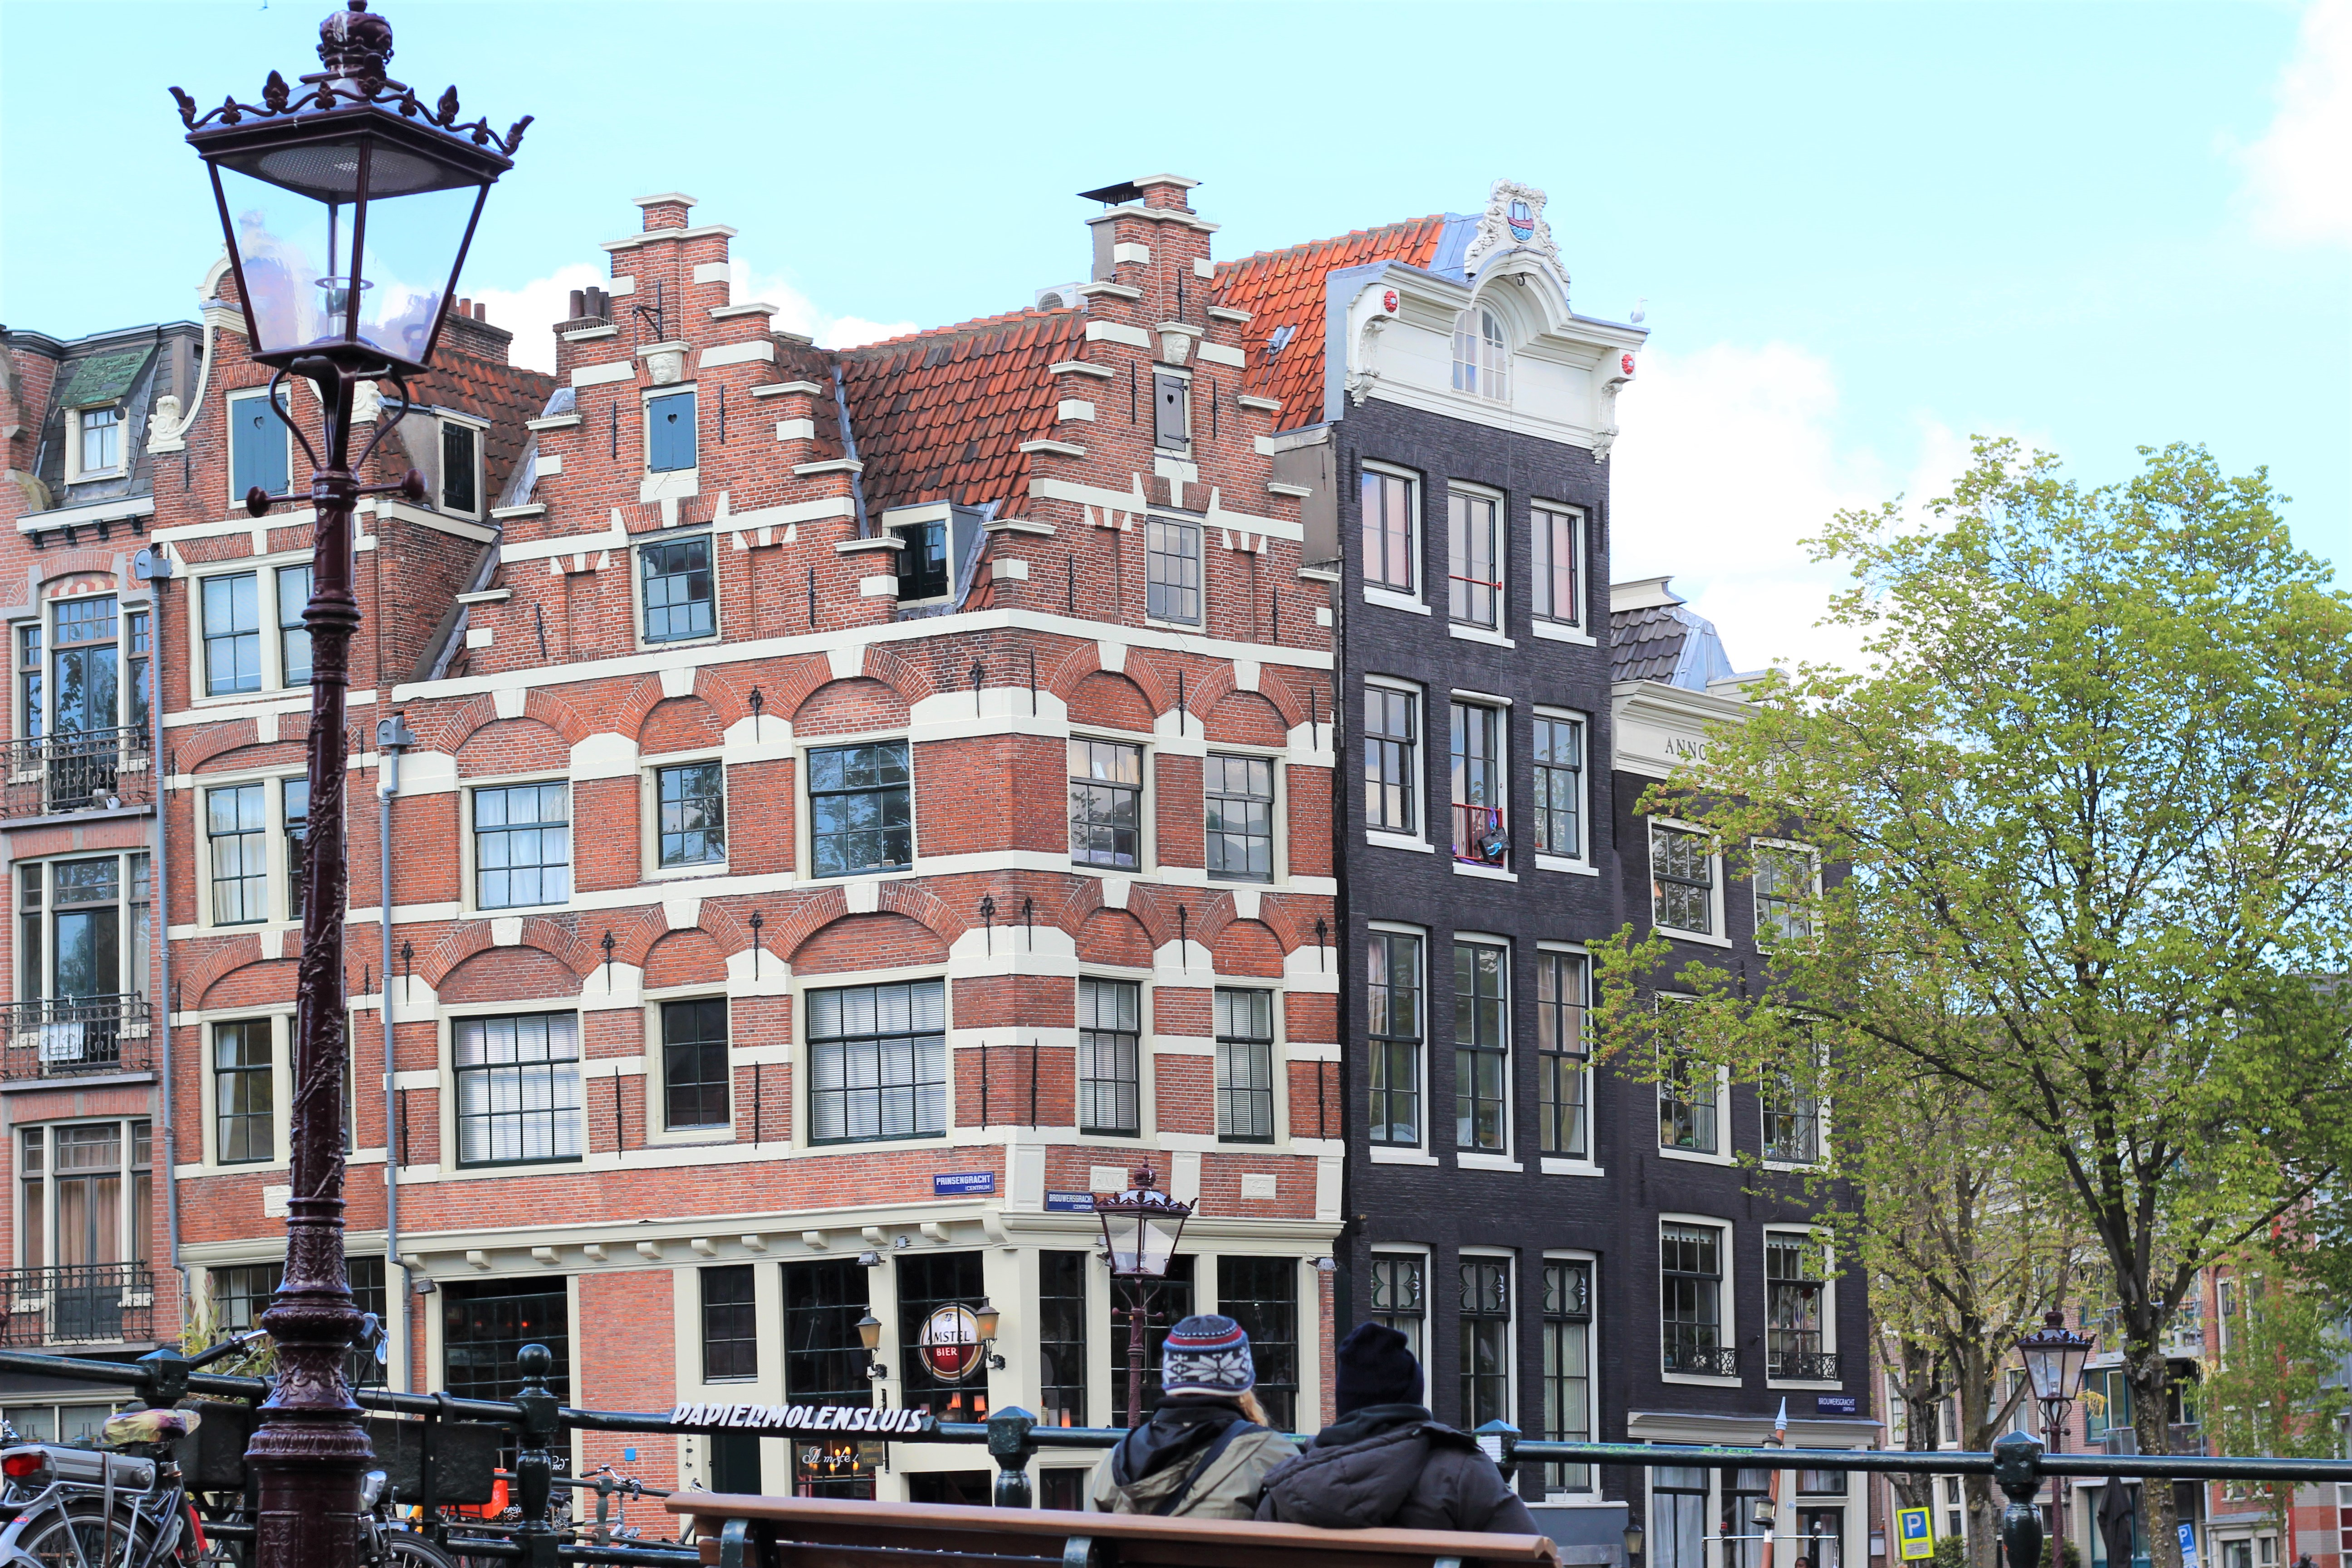 The Travelettes guide to Jordaan, Amsterdam